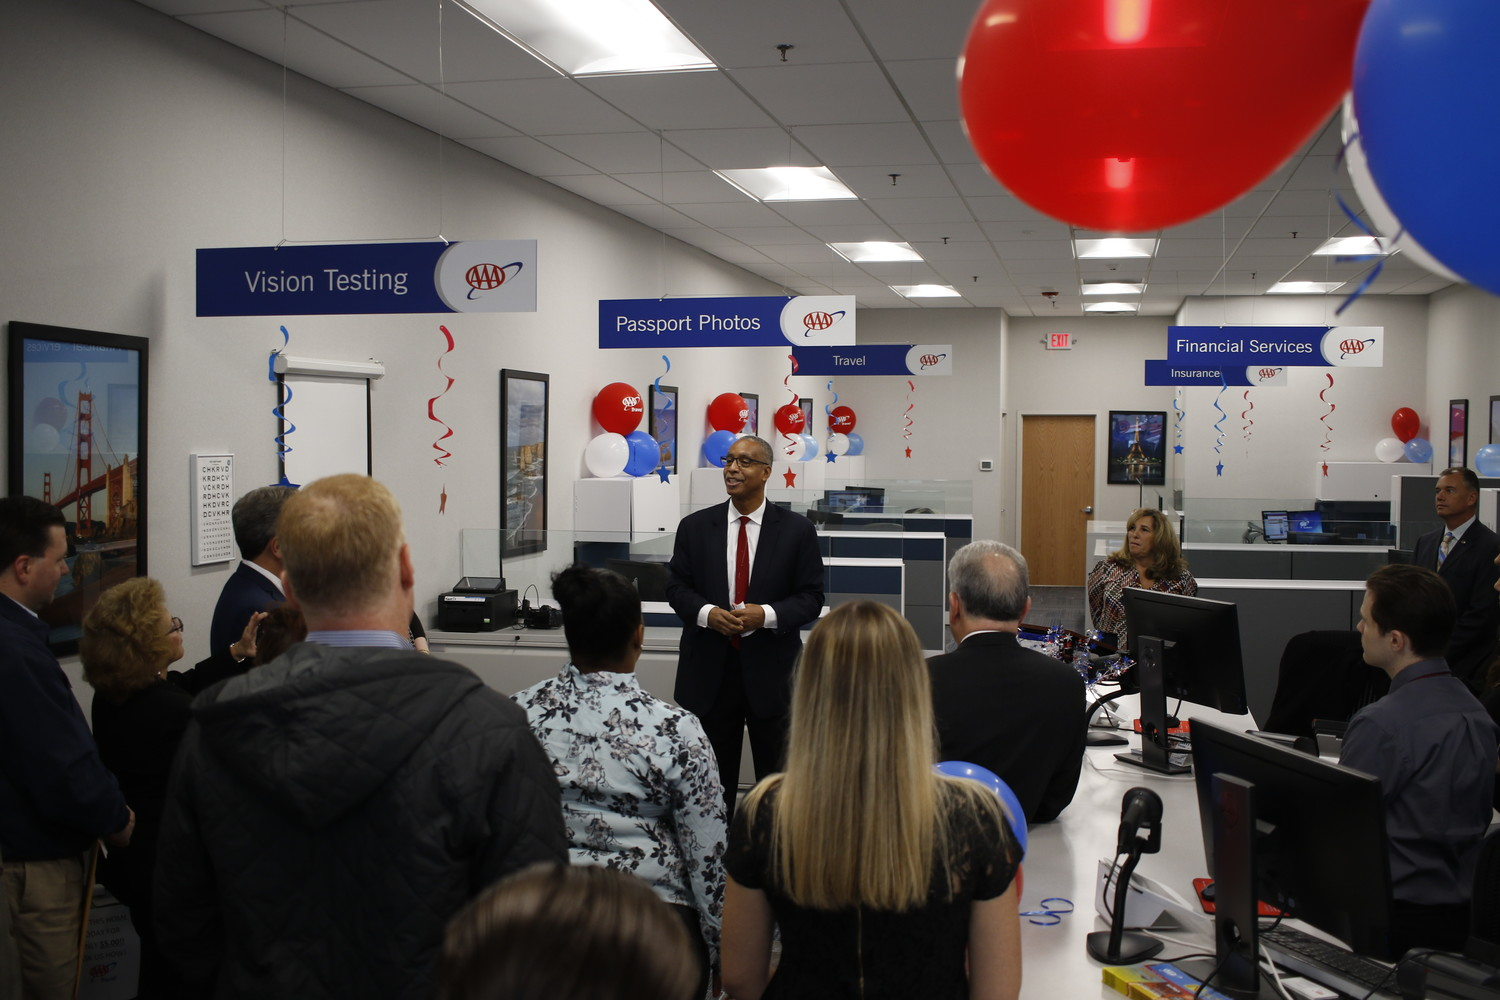 During the ribbon cutting ceremony Robert Sinclair welcomed guests and spoke about AAA and what they do.